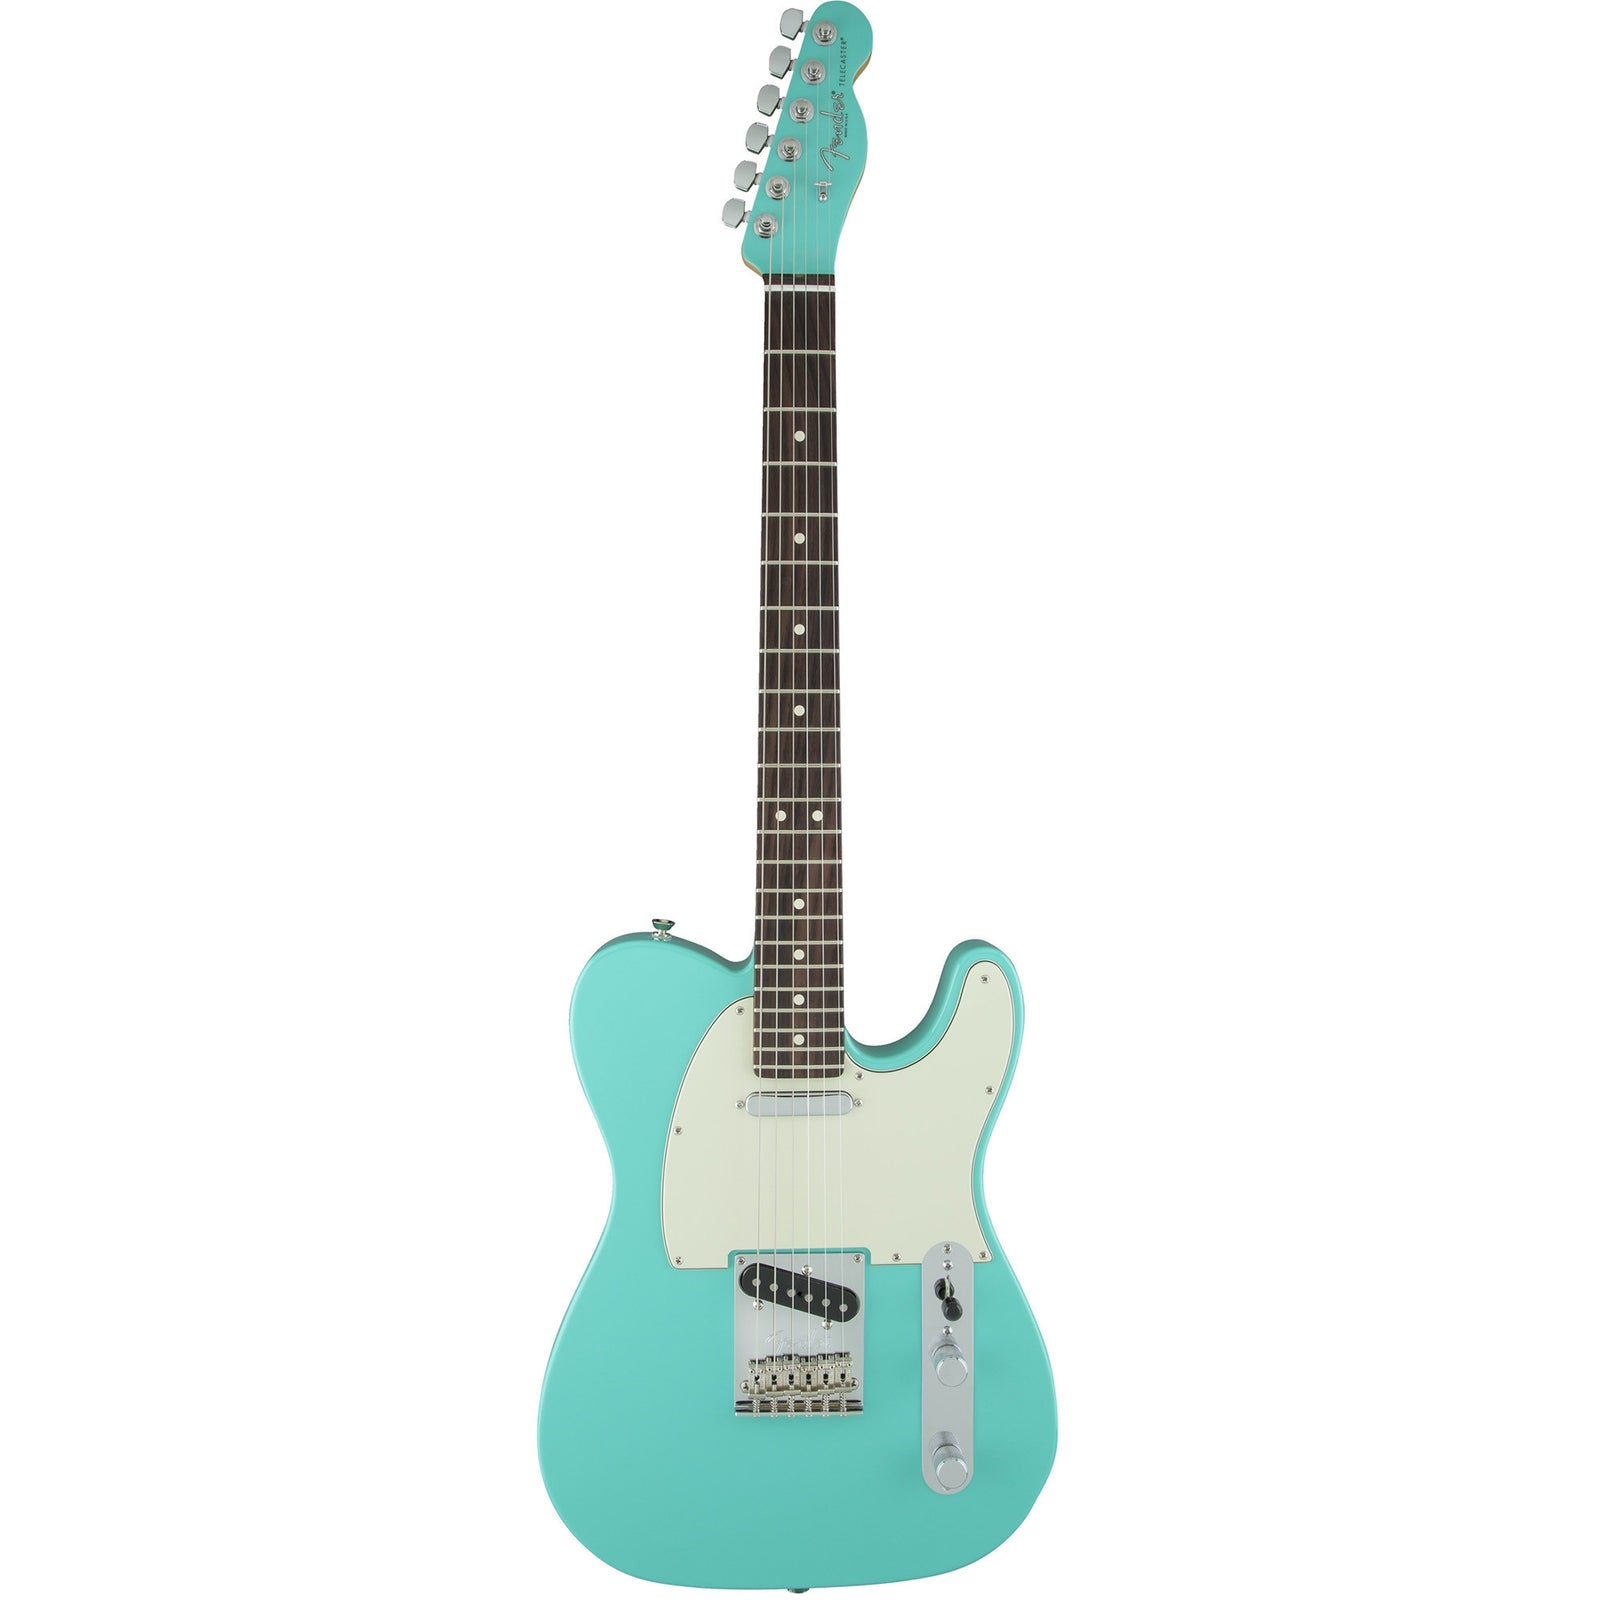 Fender Limited Edition American Standard Telecaster - Rosewood Fingerboard - Seafoam Green